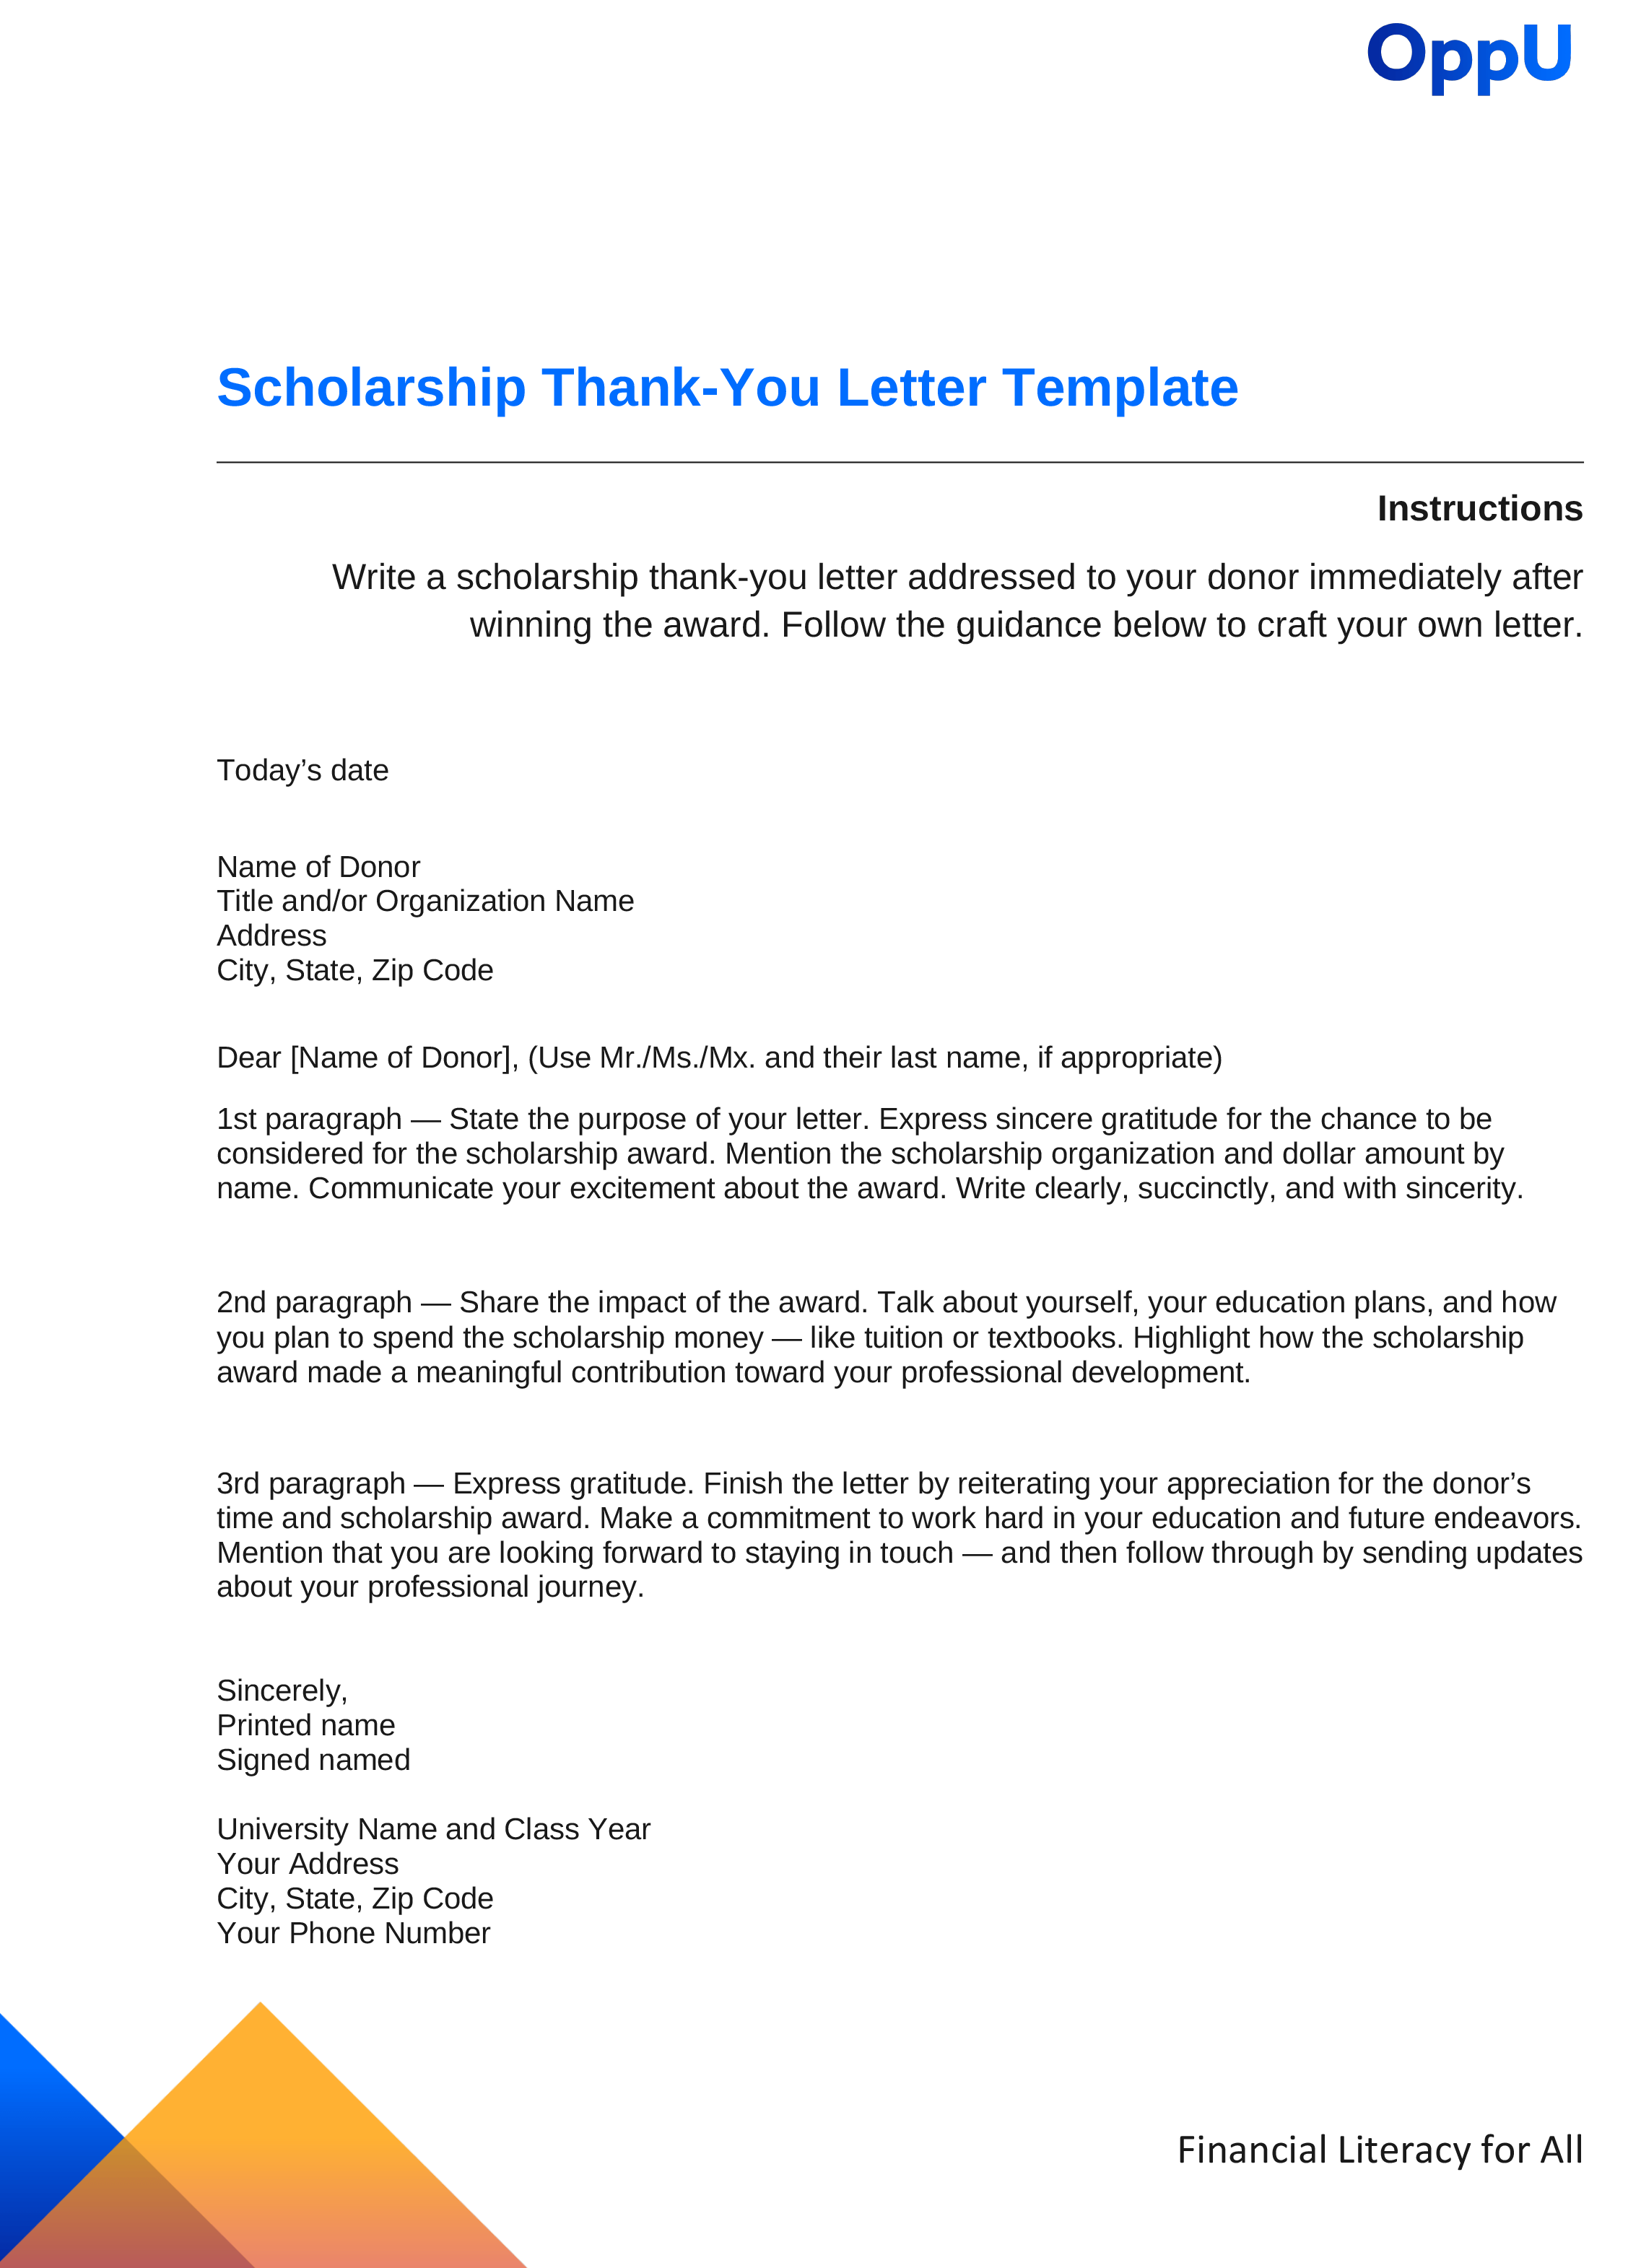 Scholarship Thank-You Letter Sample